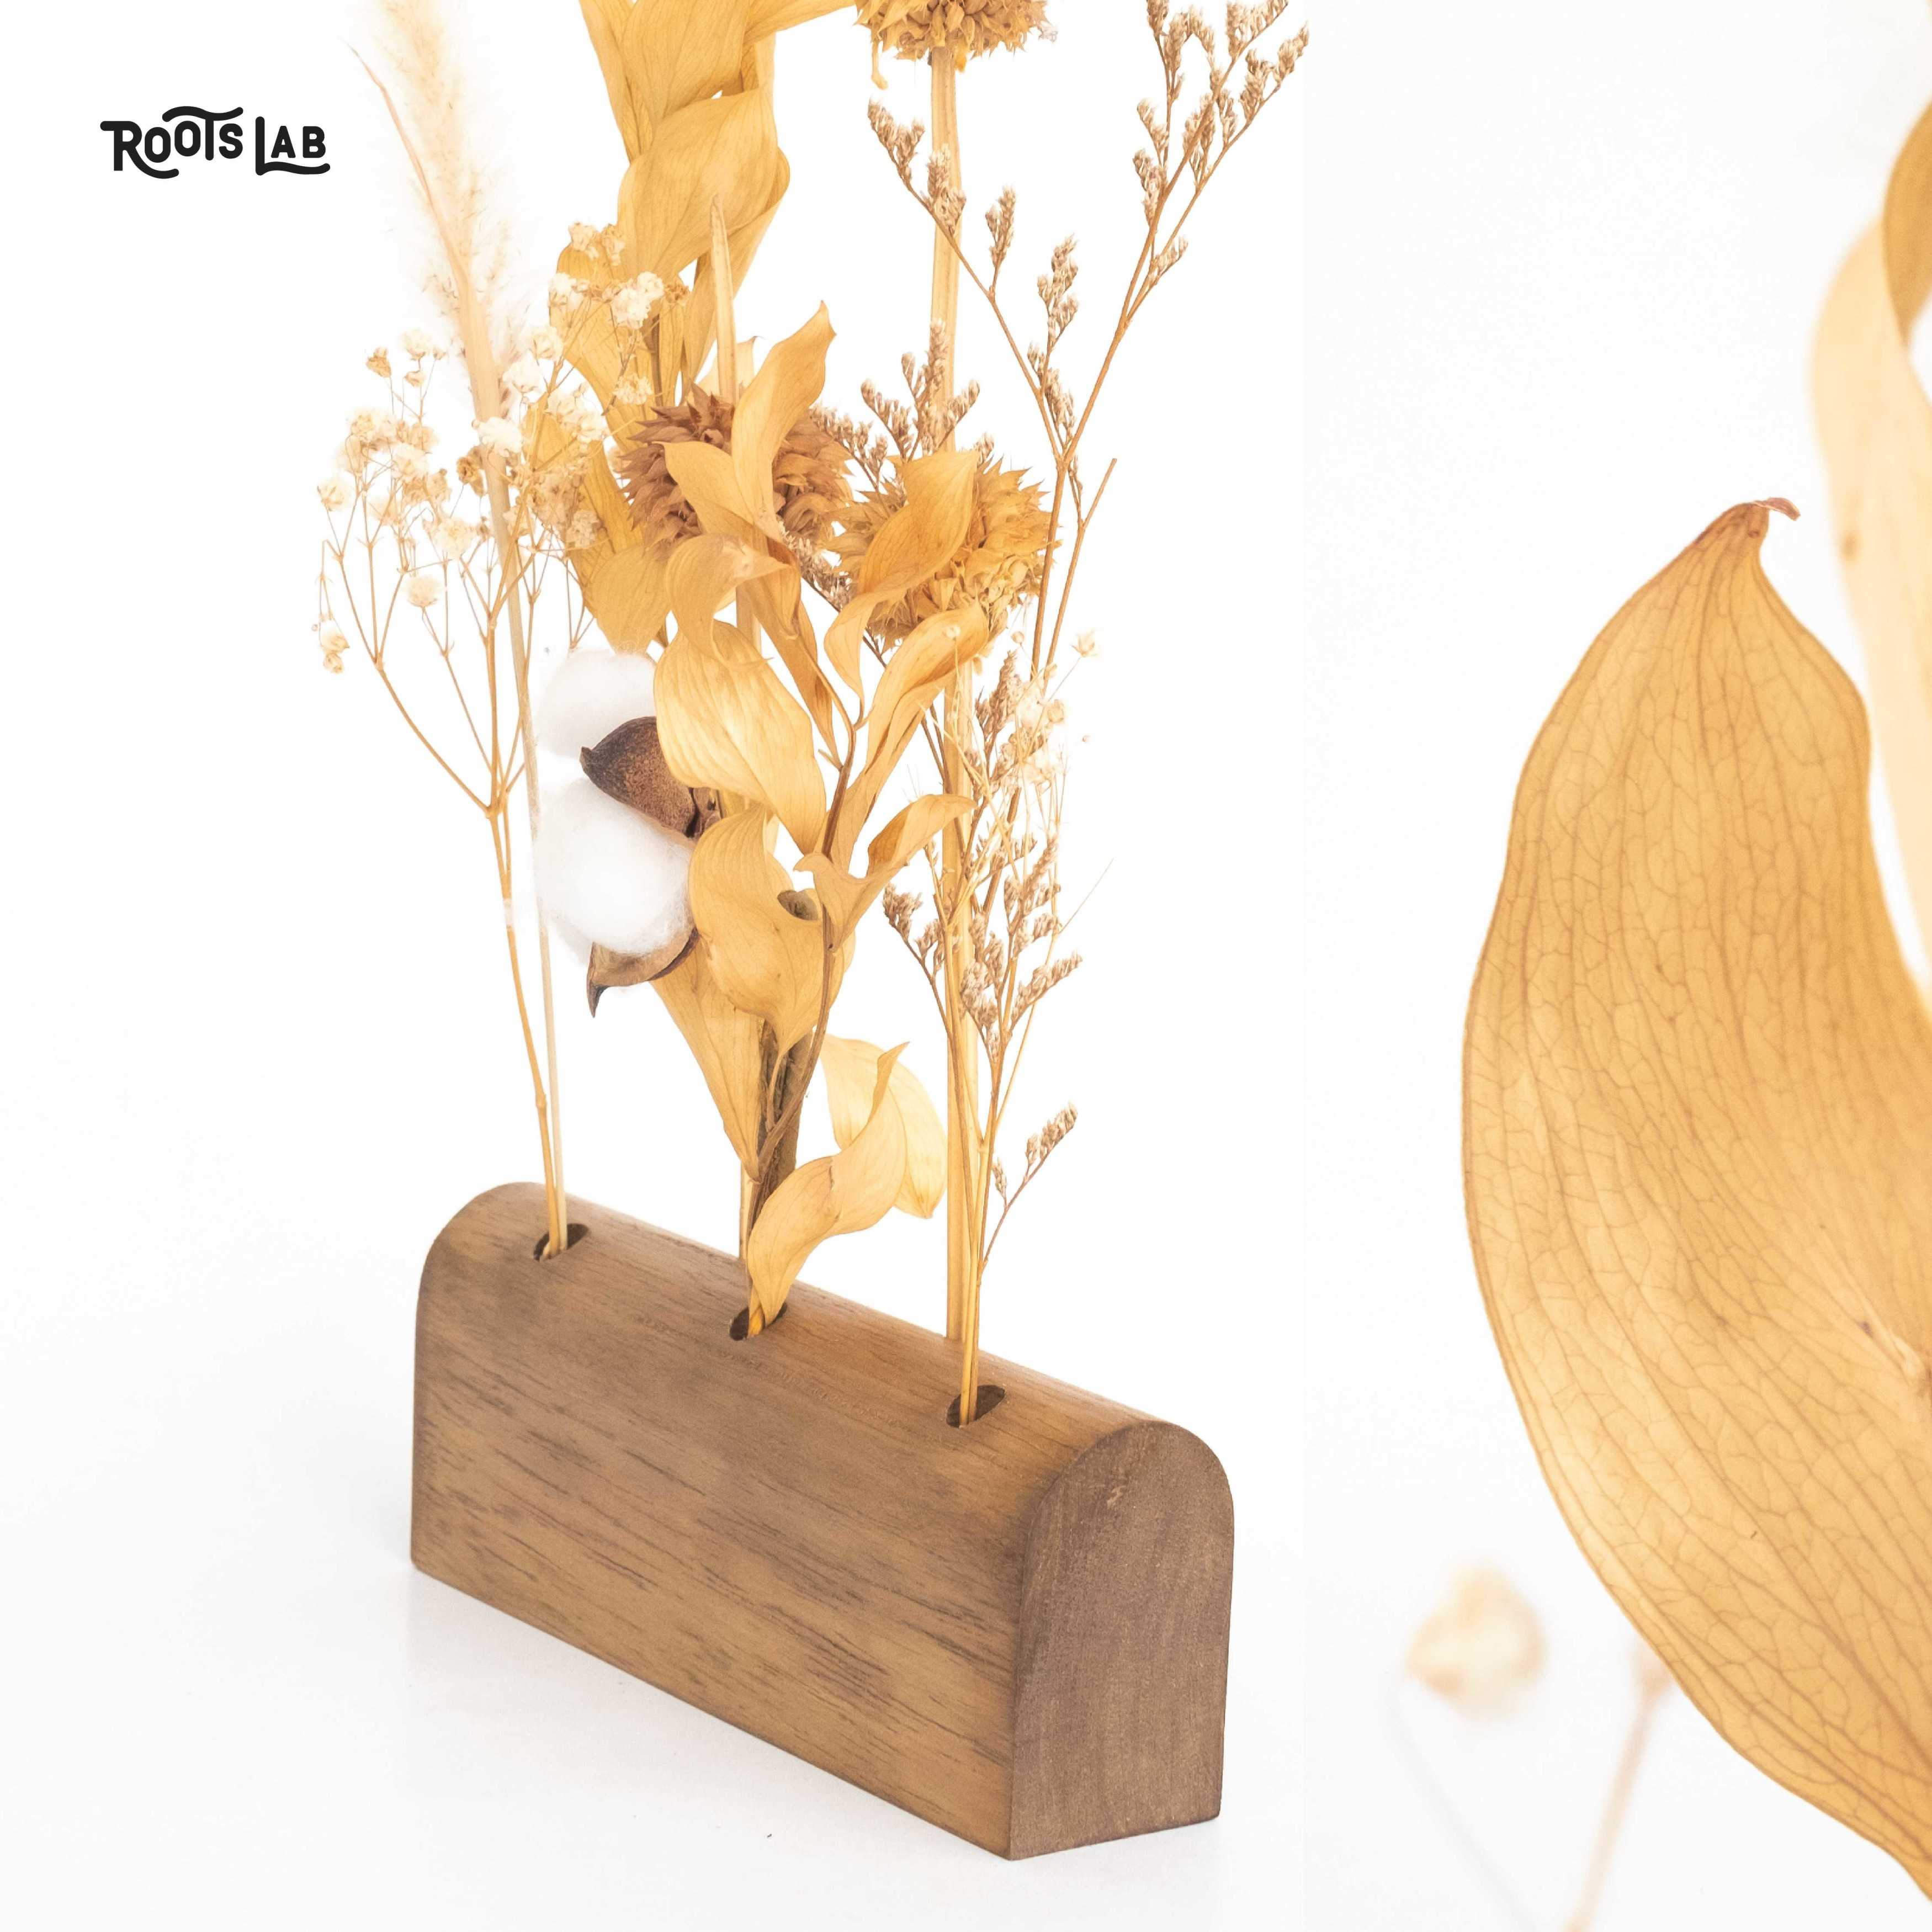 Rootslab Furniture & Craft Project Bekasi, Kota Bks, Jawa Barat, Indonesia Bekasi, Kota Bks, Jawa Barat, Indonesia Wooden Flower Stand   112998